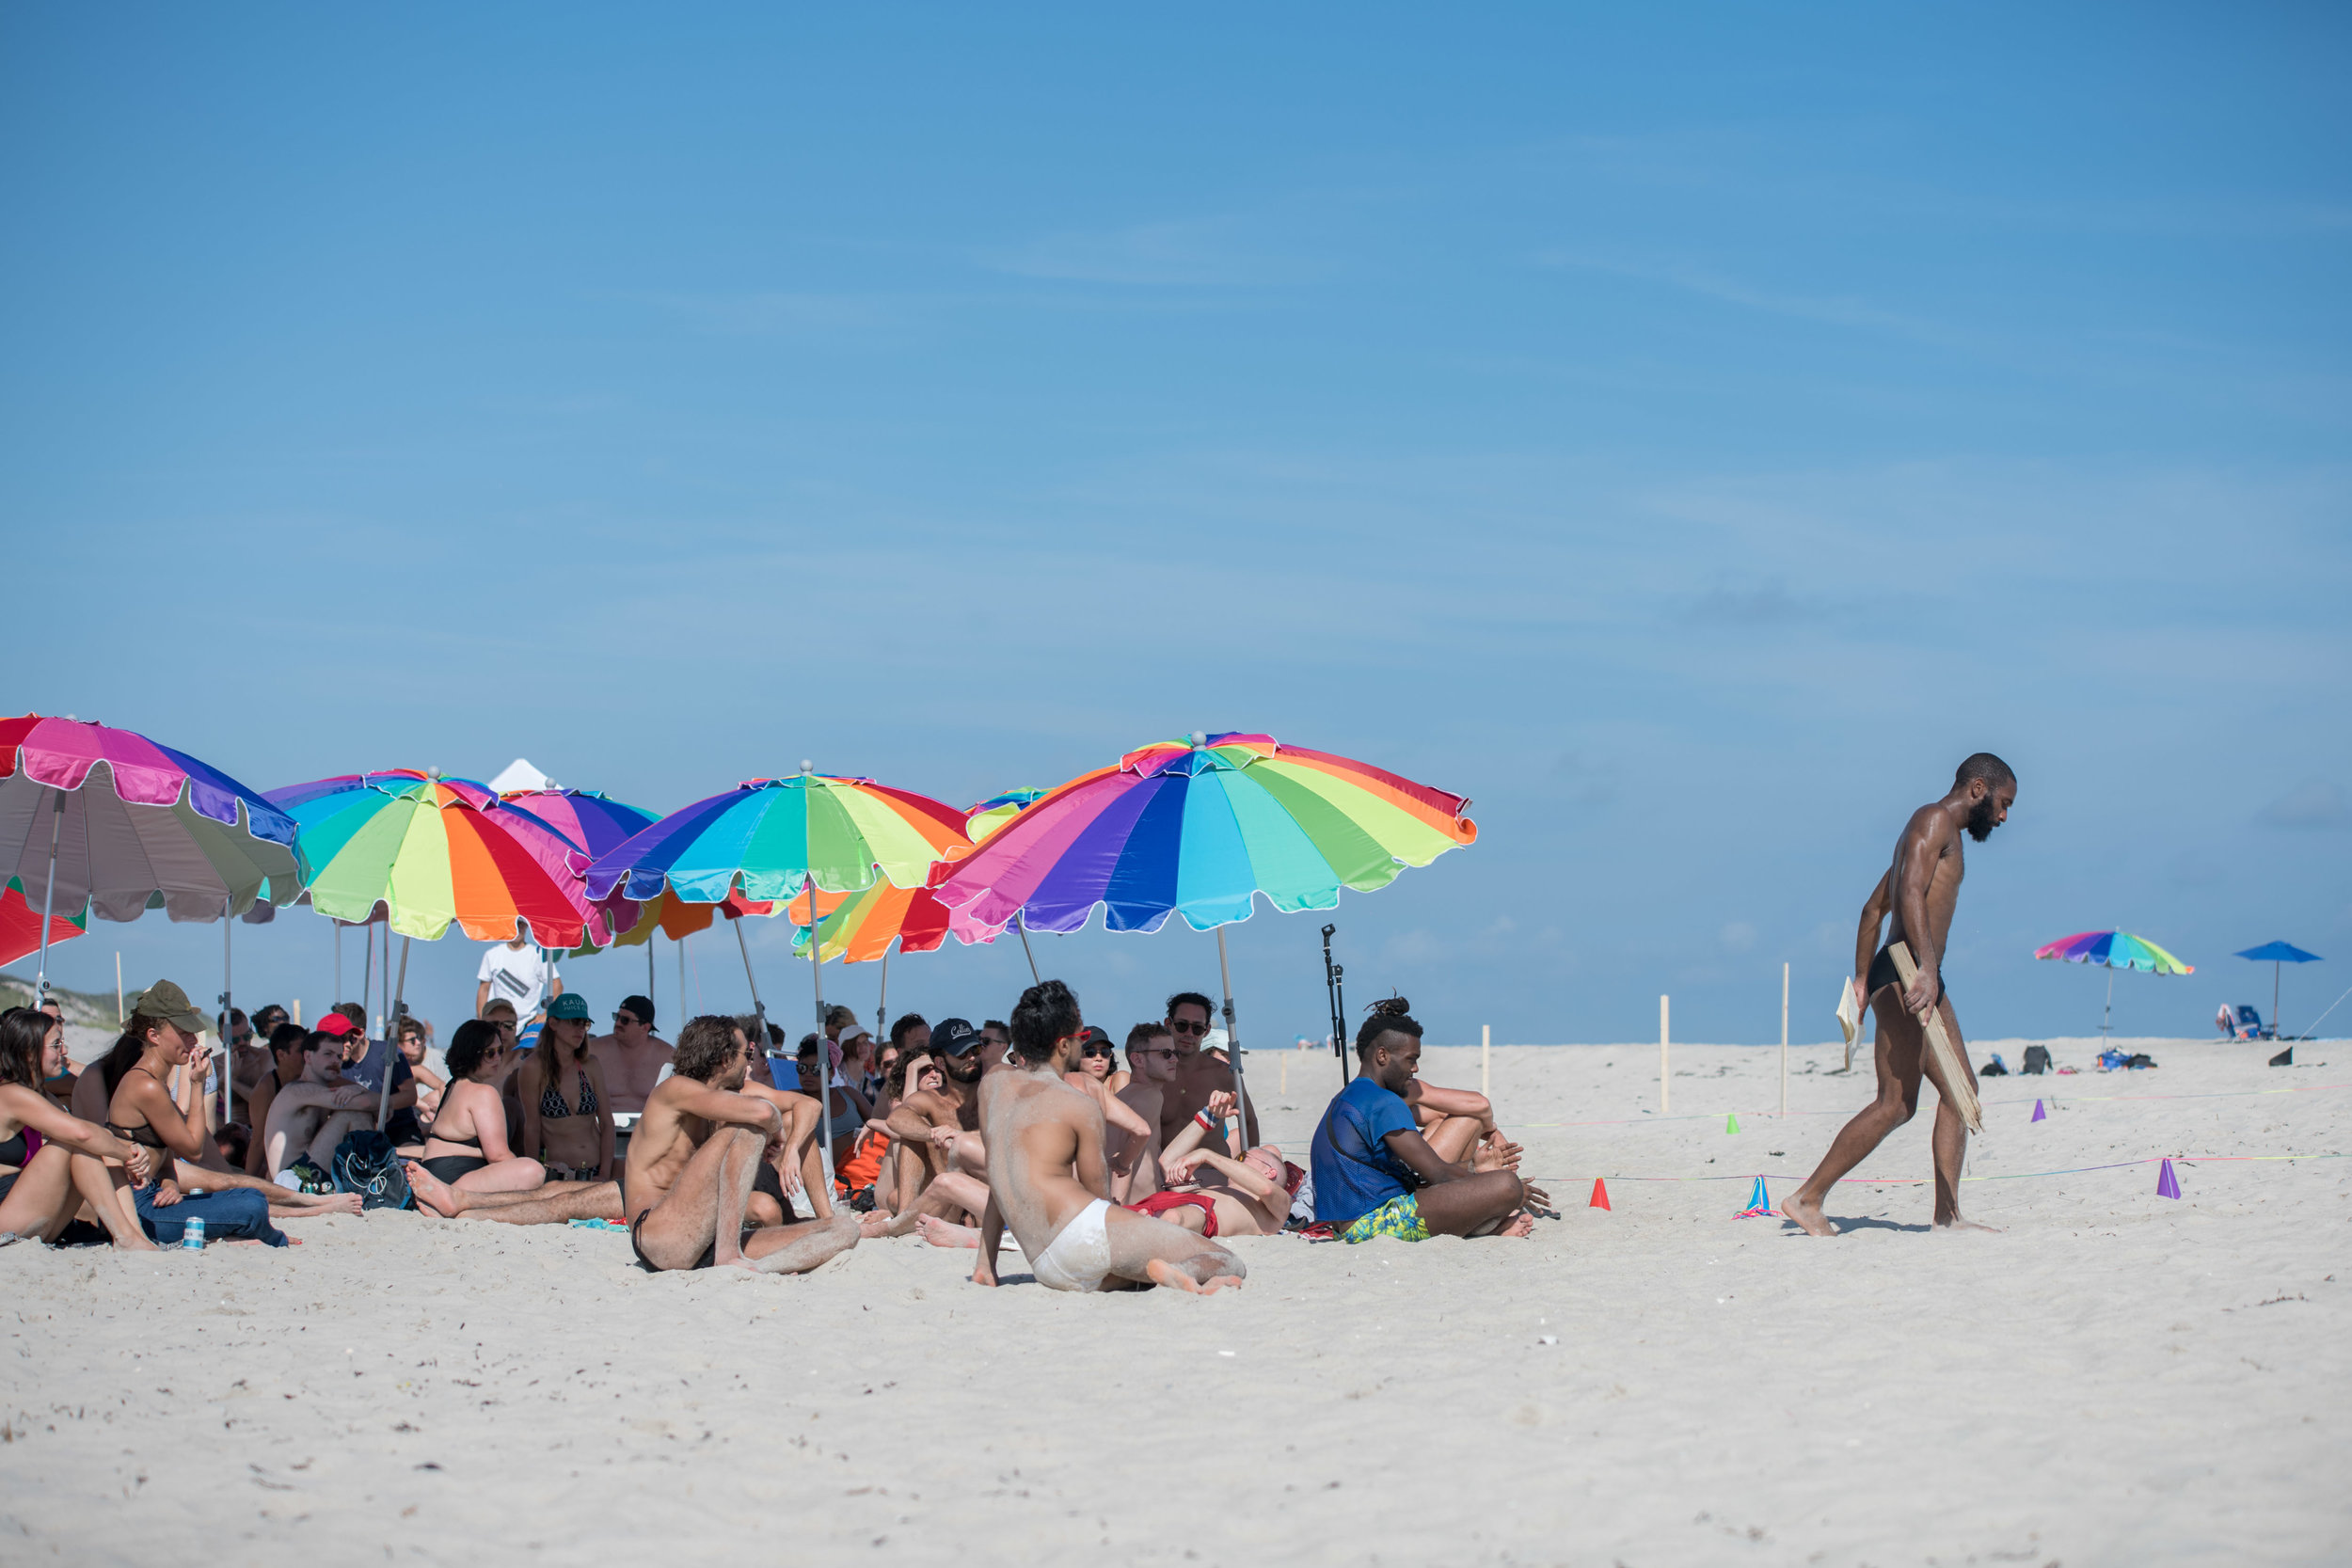 I walk away from the audience, who is seated under the arrangement of colorful beach towels. Photo by Nir Arieli